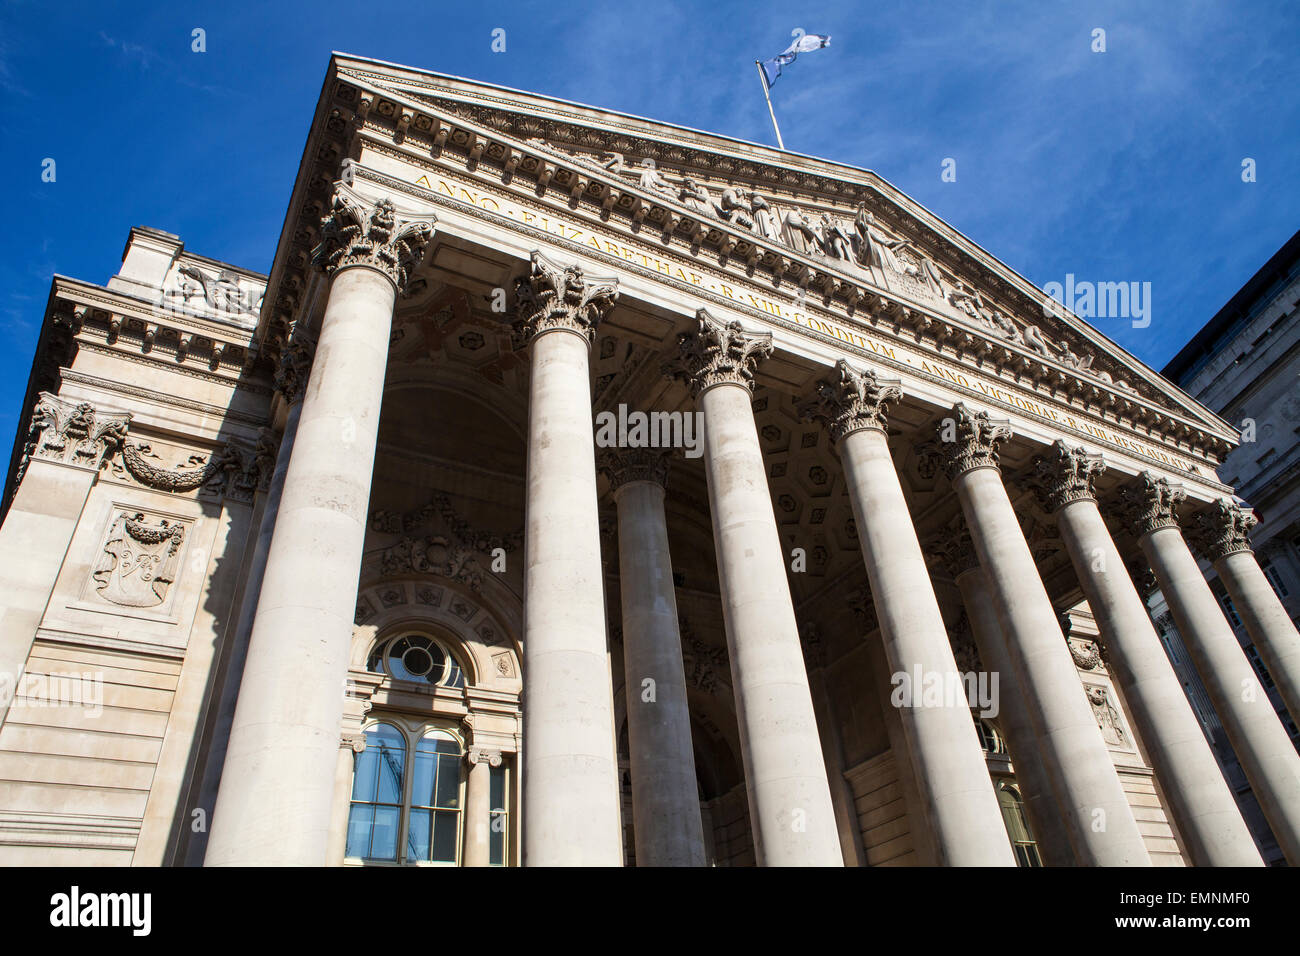 Looking up at the magnificent exterior of the Royal Exchange in the City of London. - Stock Image